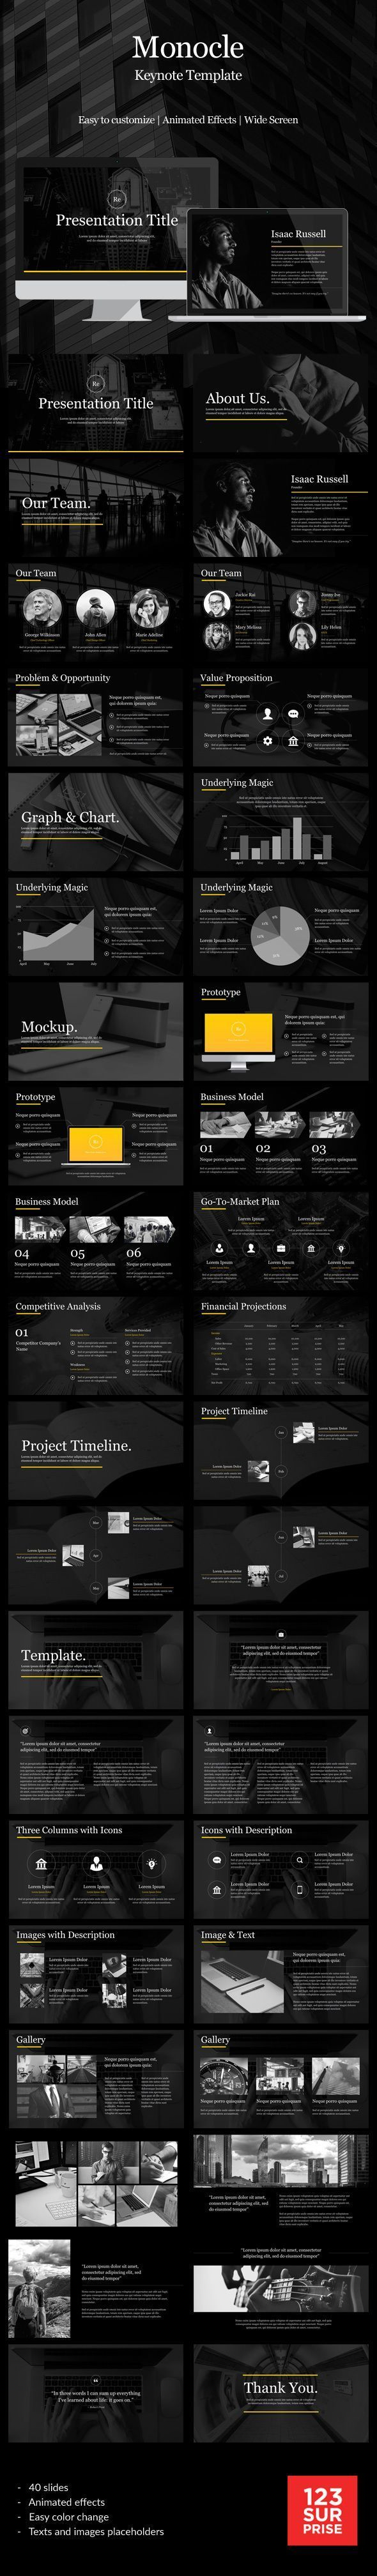 Business infographic business infographic monocle powerpoint business infographic business infographic monocle powerpoint presentation template toneelgroepblik Choice Image